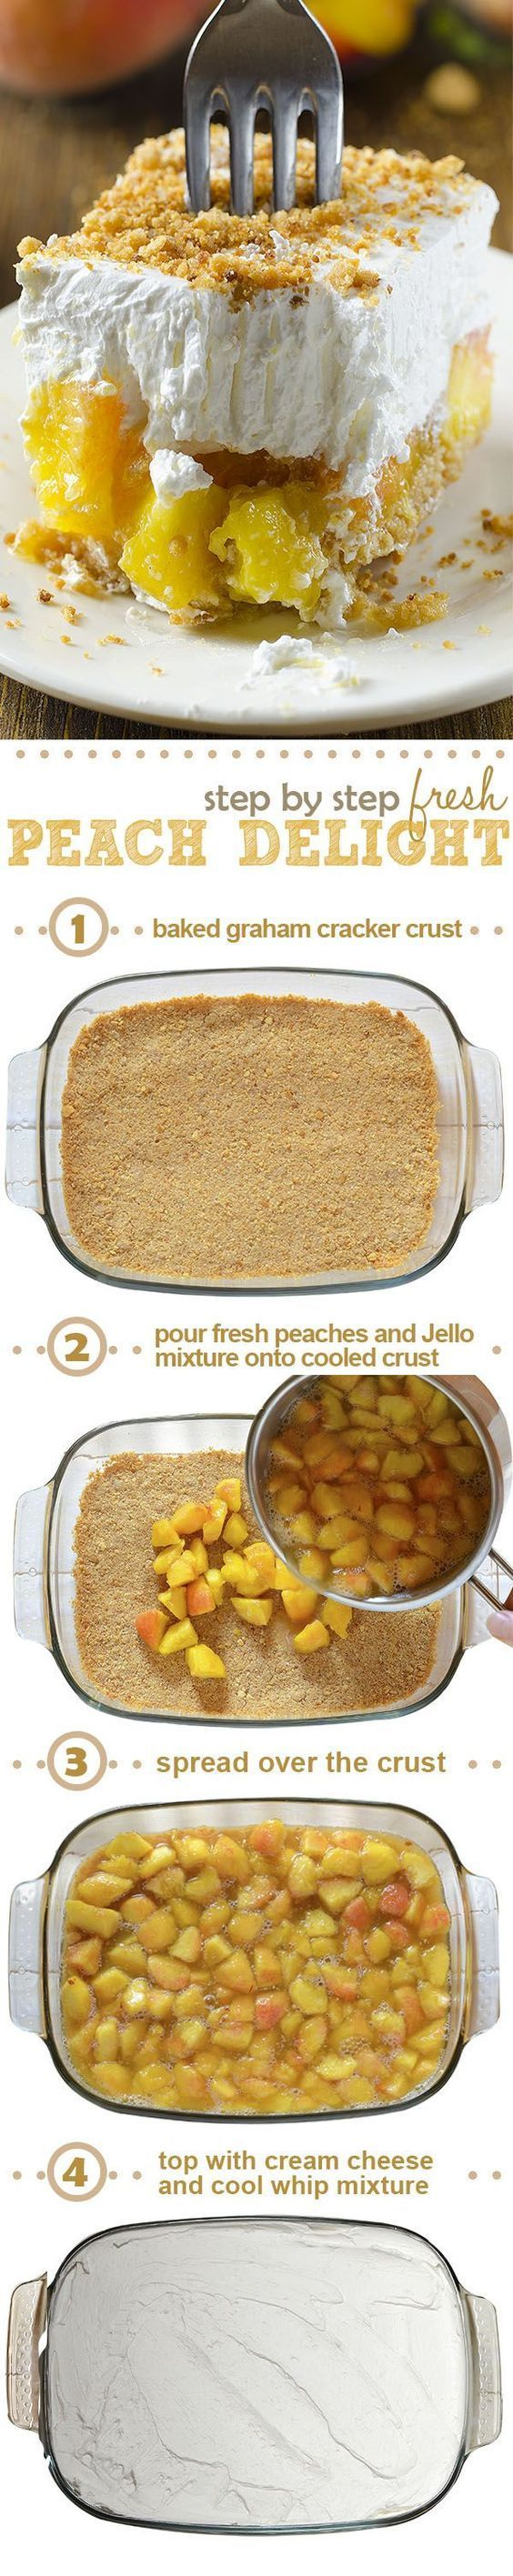 Fresh Peach Delight is a refreshing layered dessert - graham cracker crust is followed by a layer of fresh peach and jello filling, finished with a layer of cream cheese and cool whip mixture sprinkle with graham cracker crumbs on top.